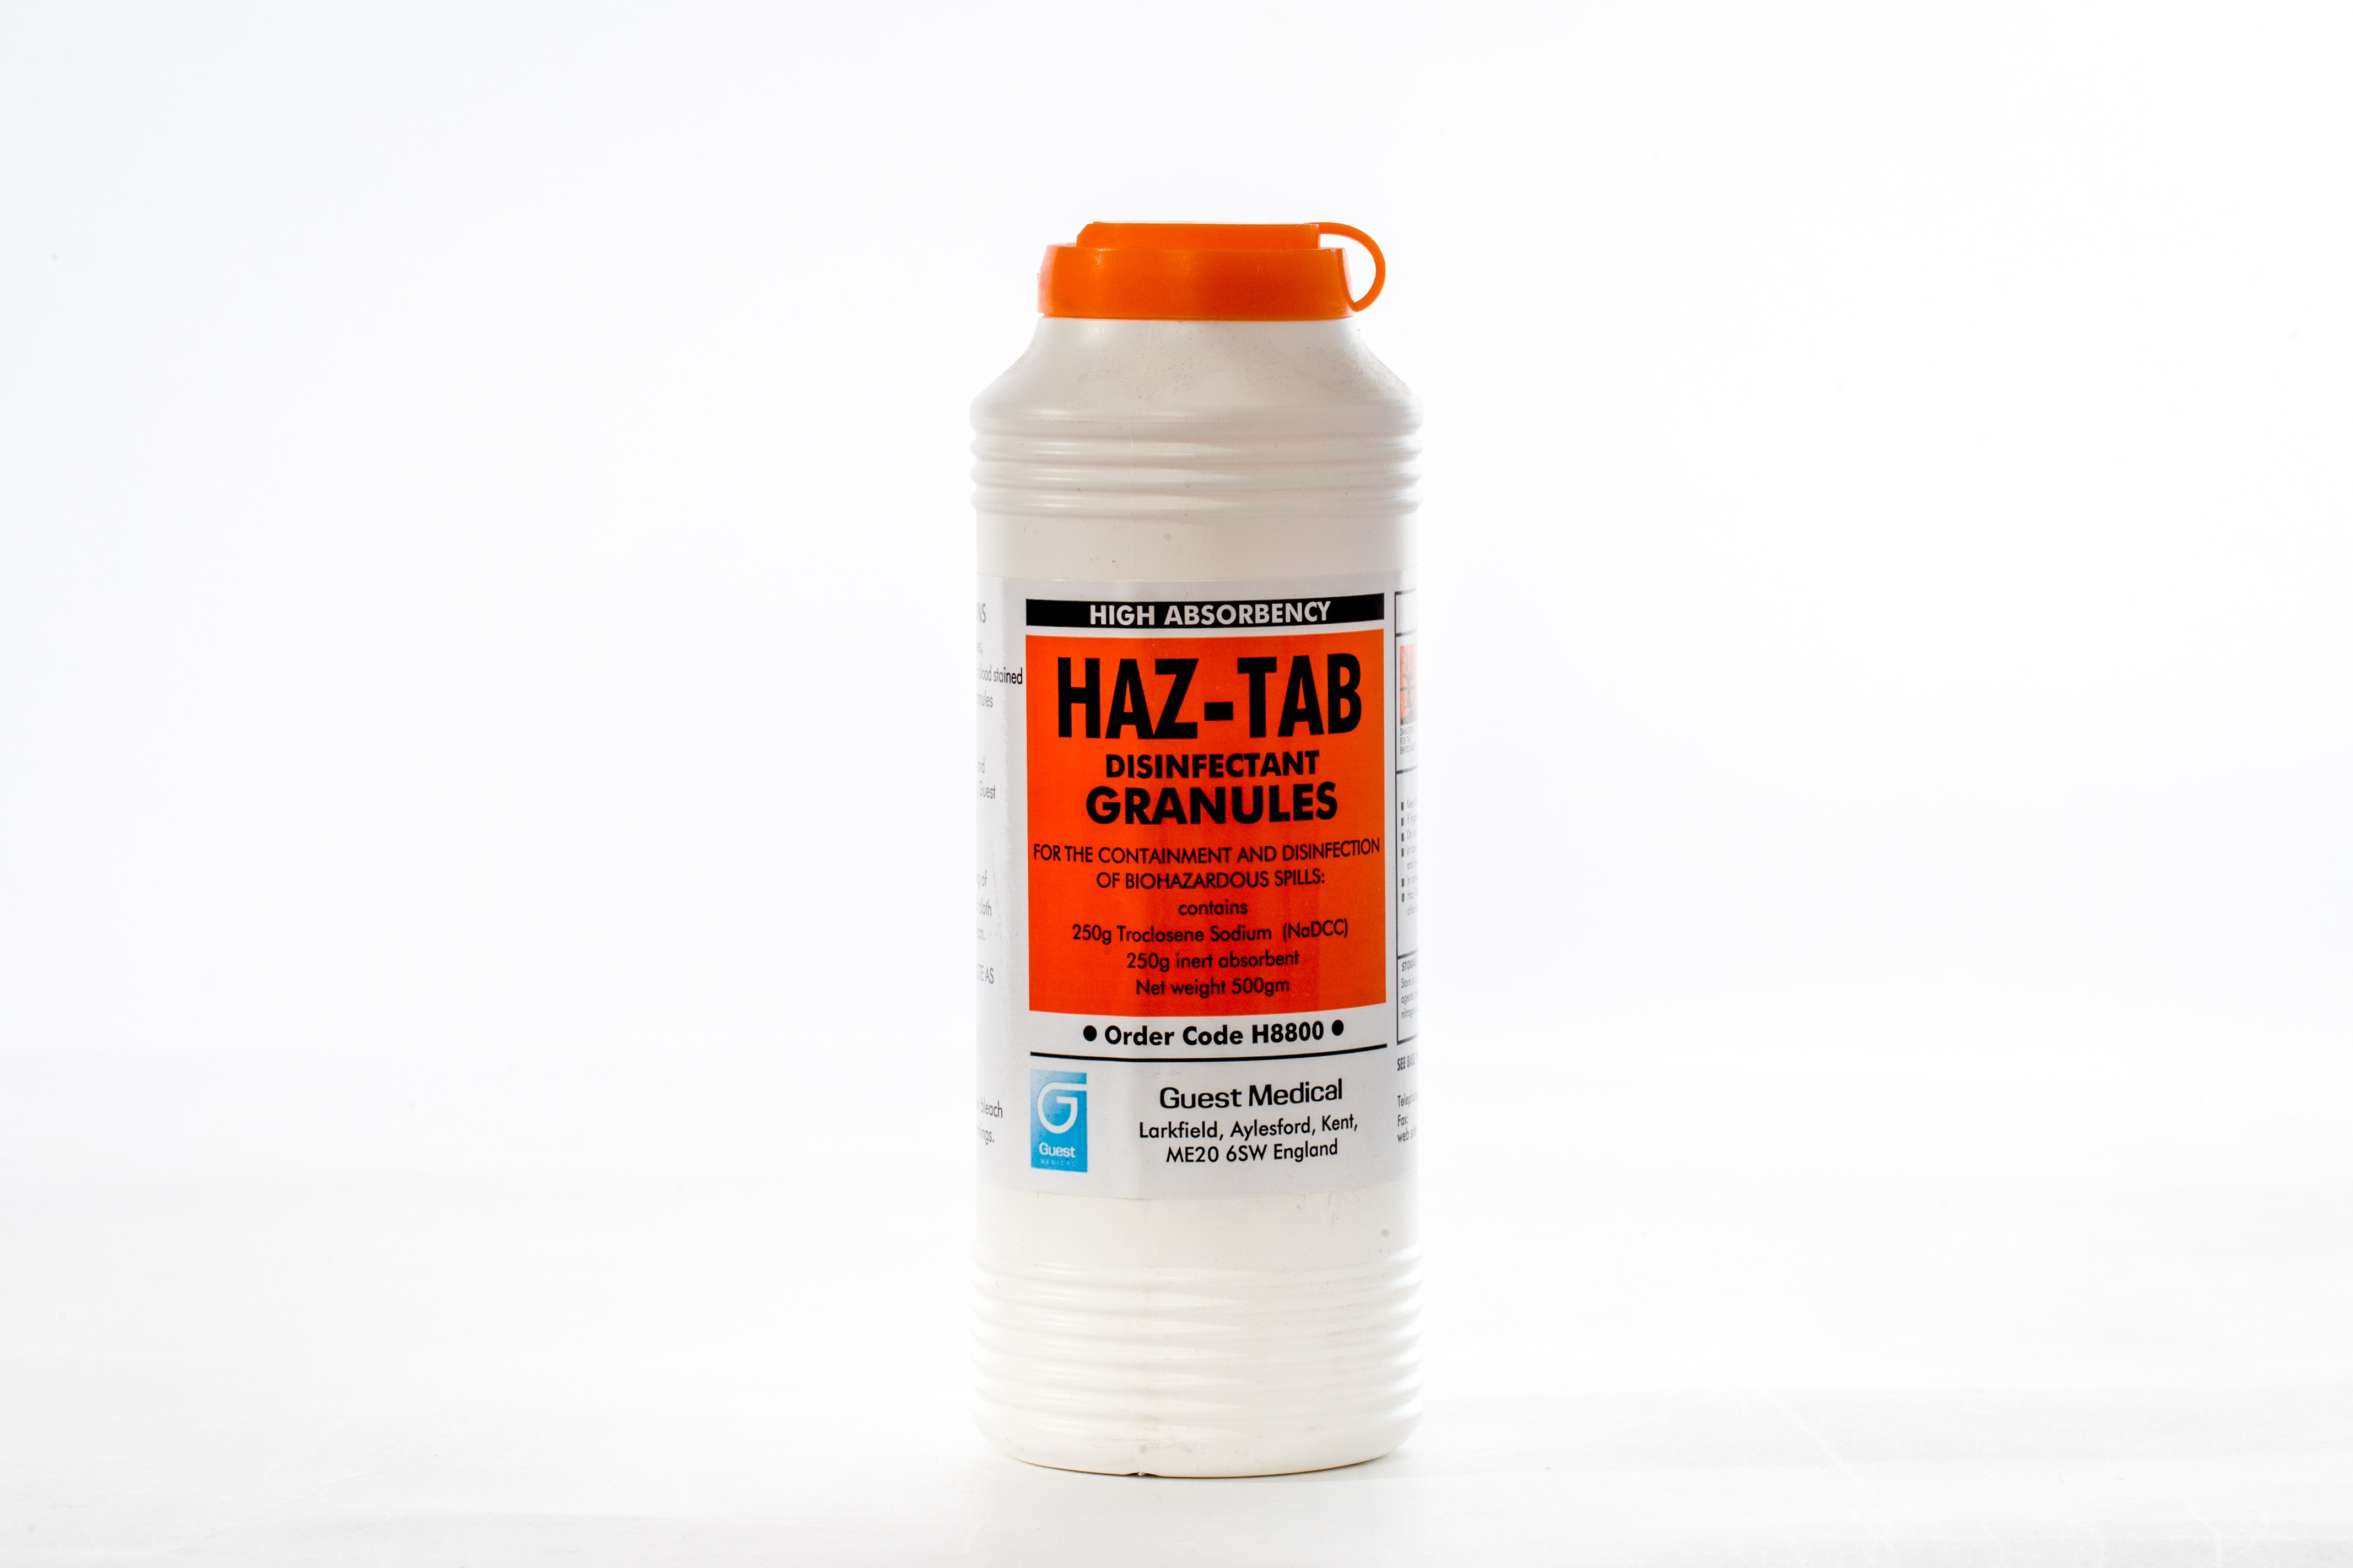 Disinfectant Granules - Haz-Tab - High Absorbancy - 500g